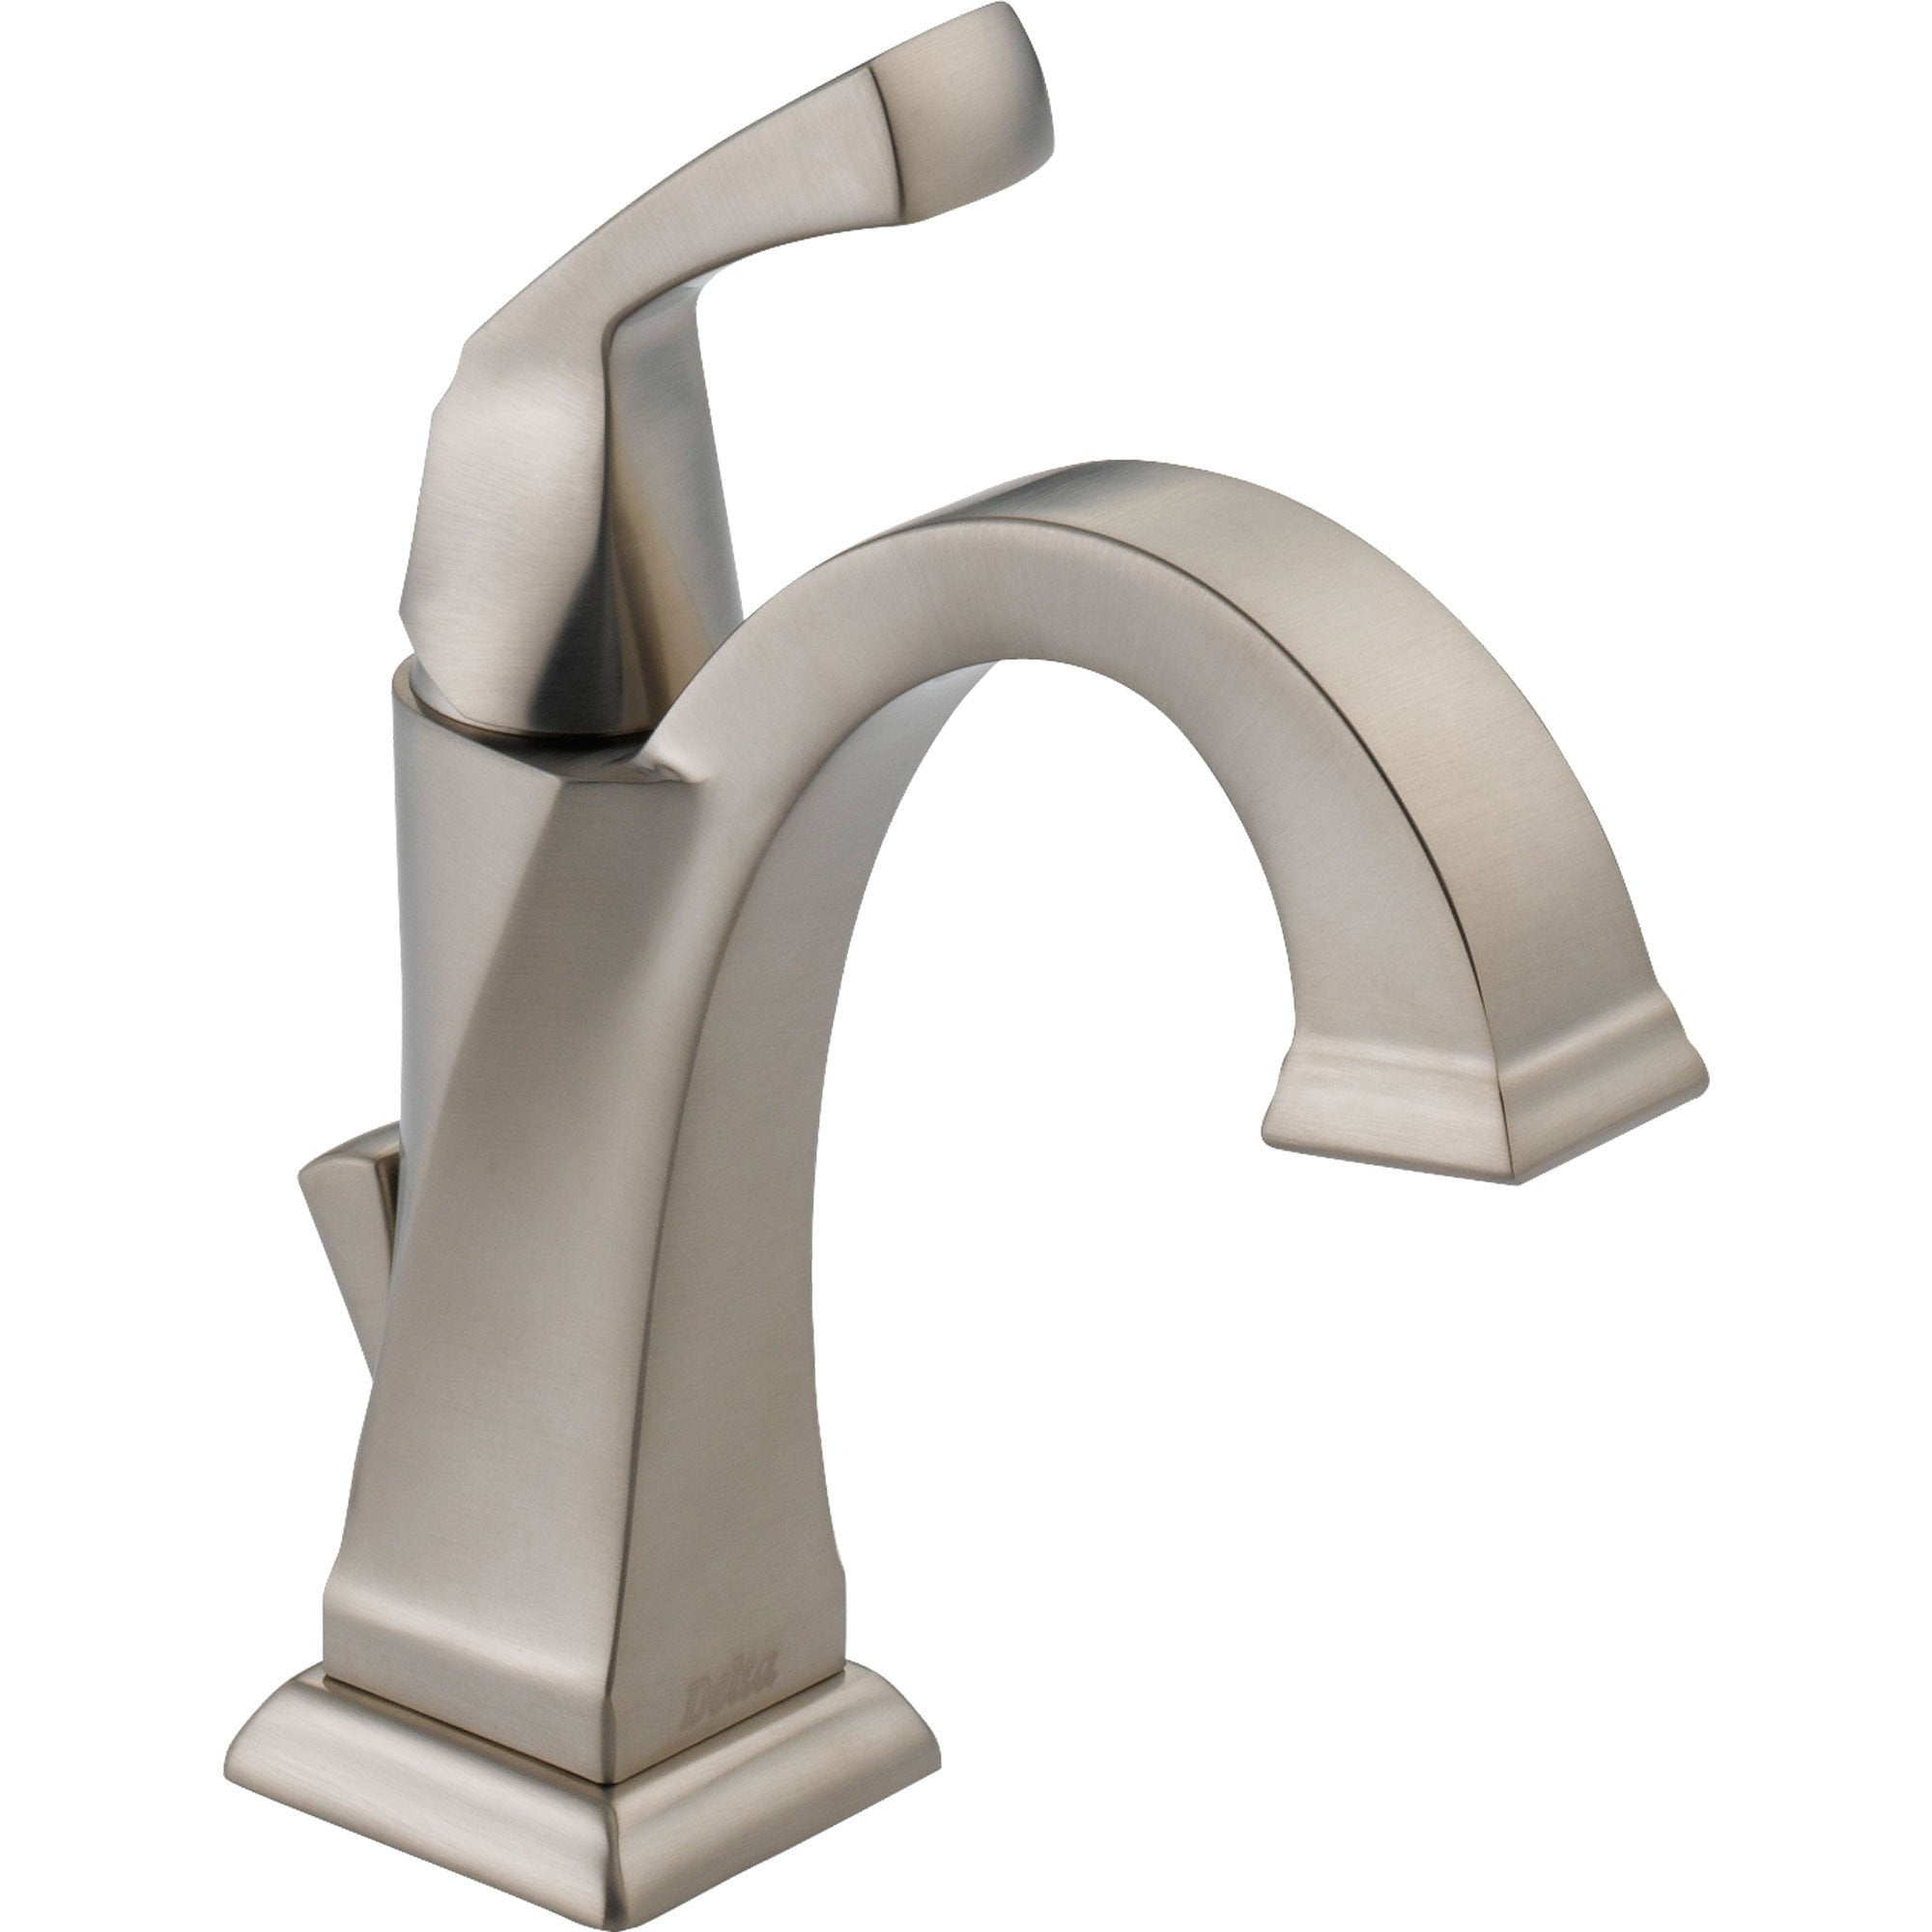 Delta Dryden Stainless Steel Finish Single-Hole 1-Handle Bathroom Faucet 495408